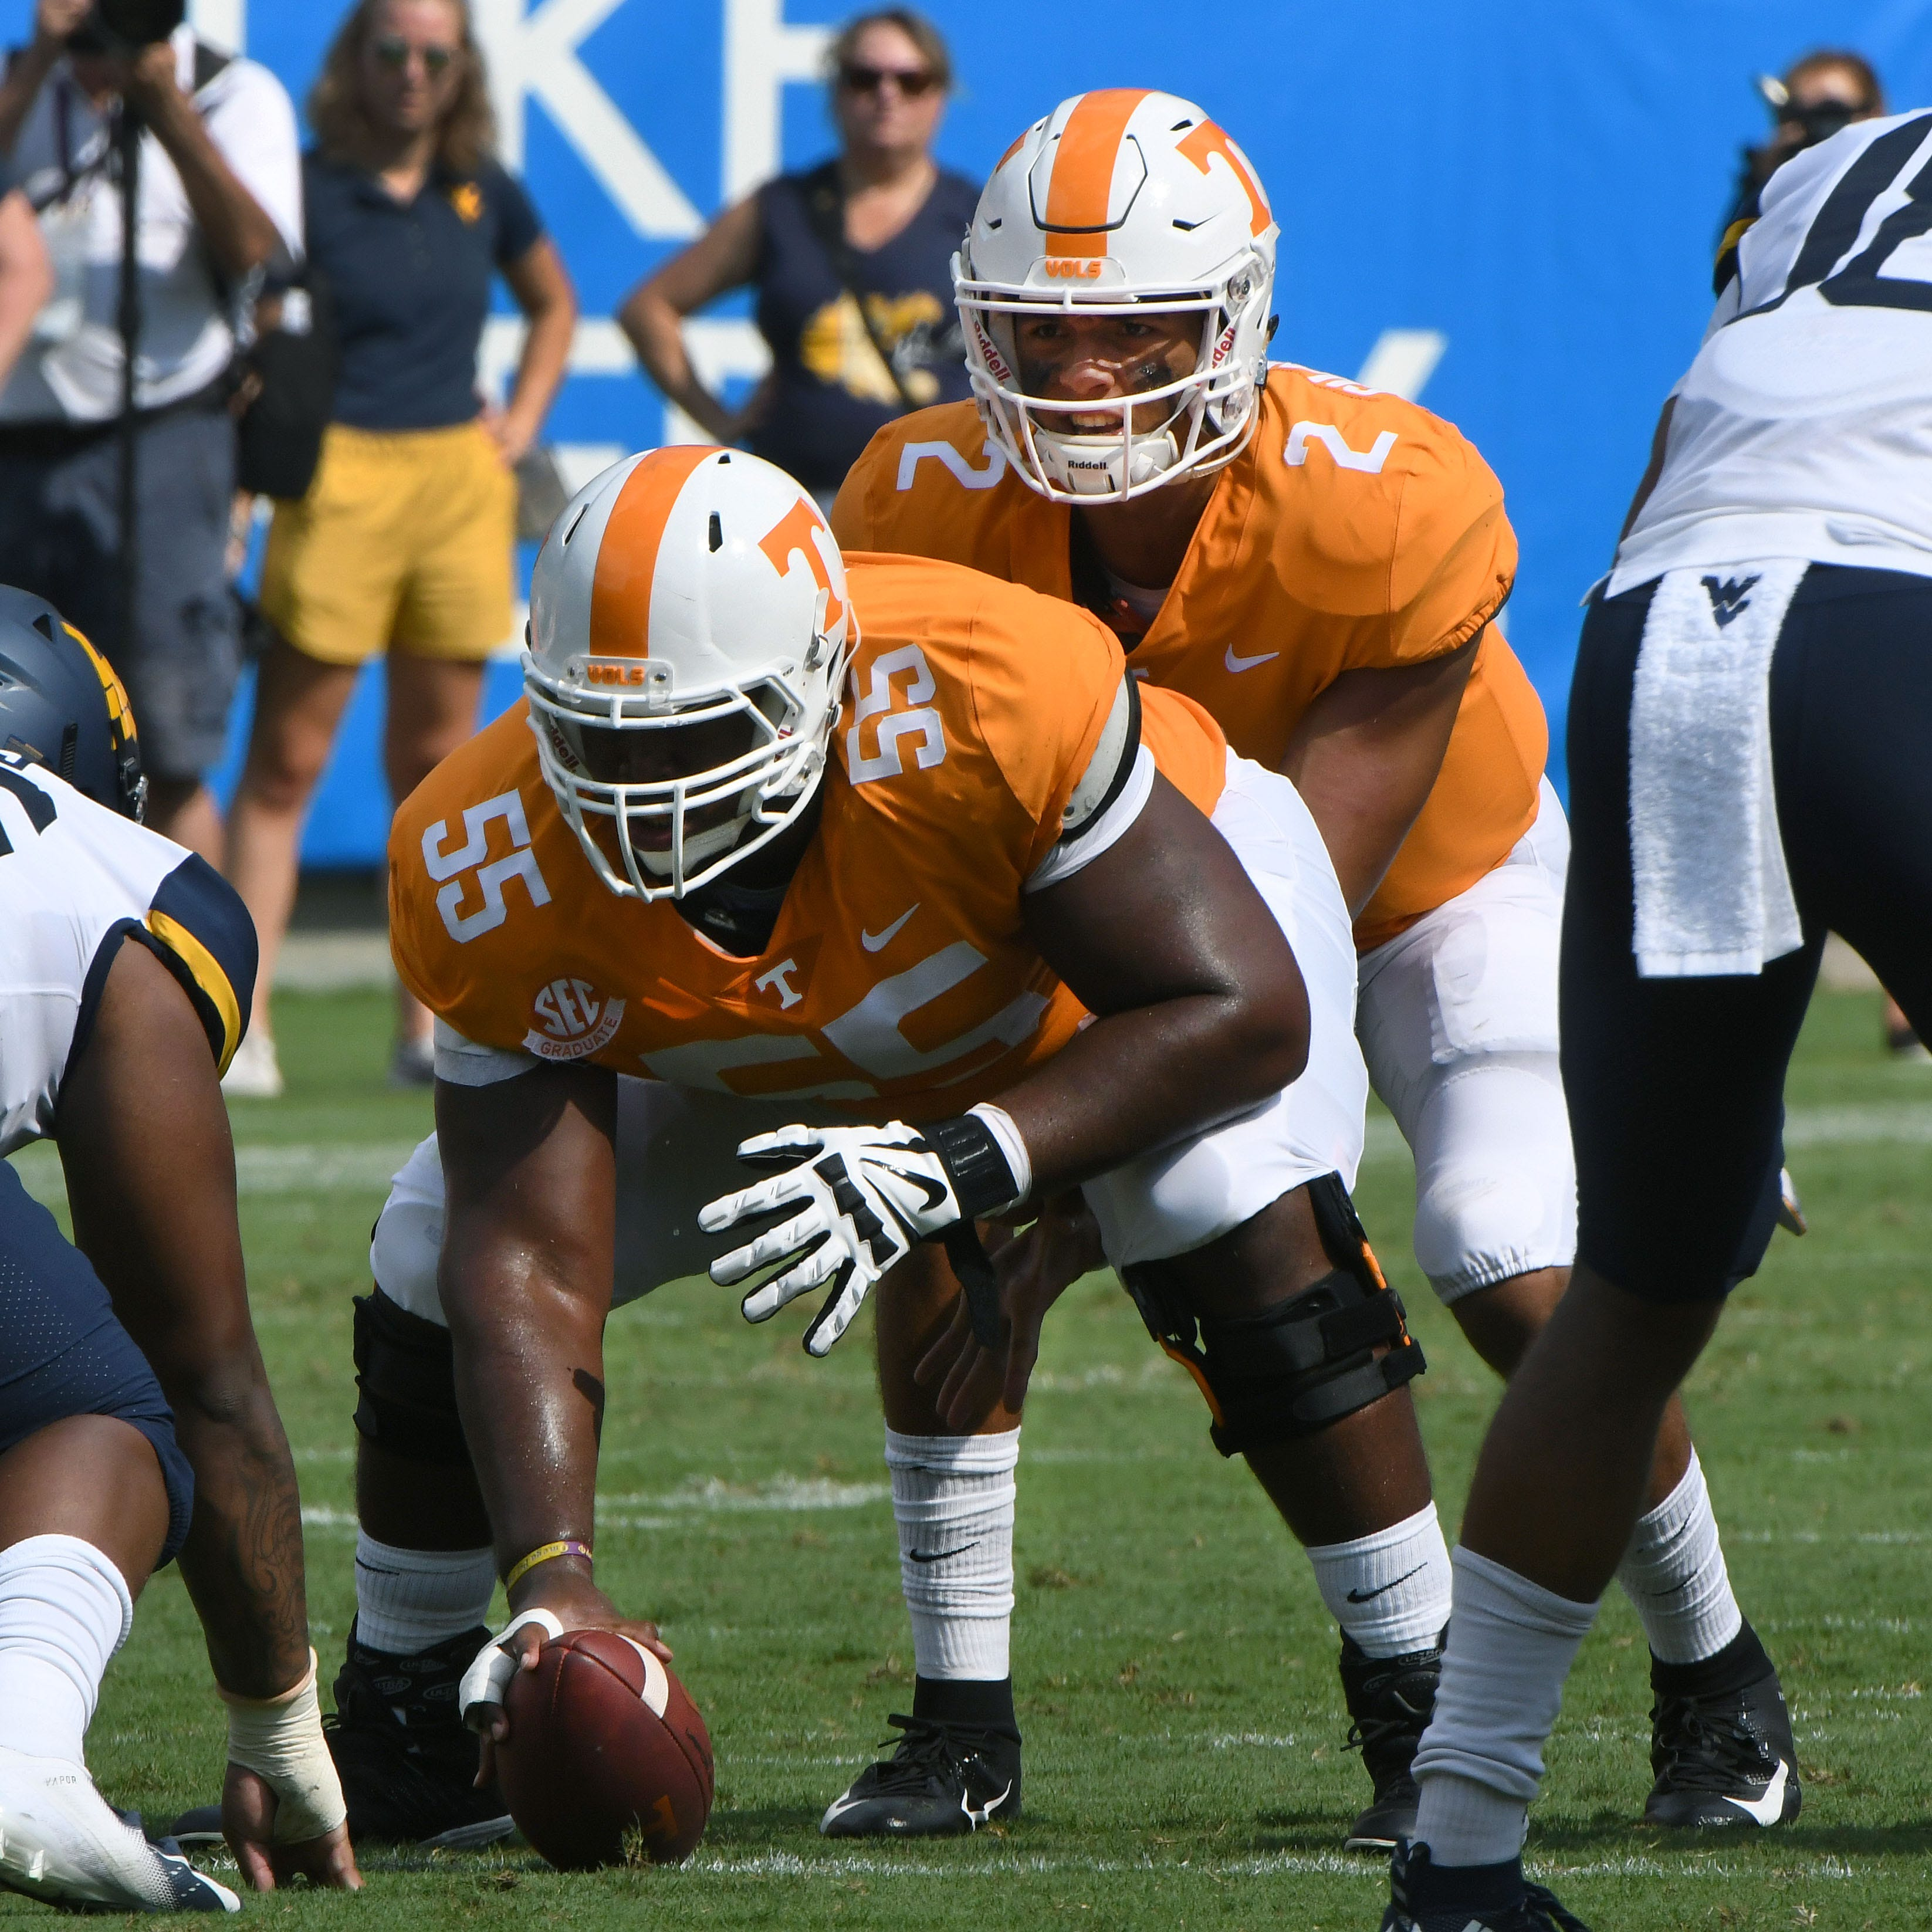 UT Vols starting center Brandon Kennedy suffers season-ending ACL injury in practice